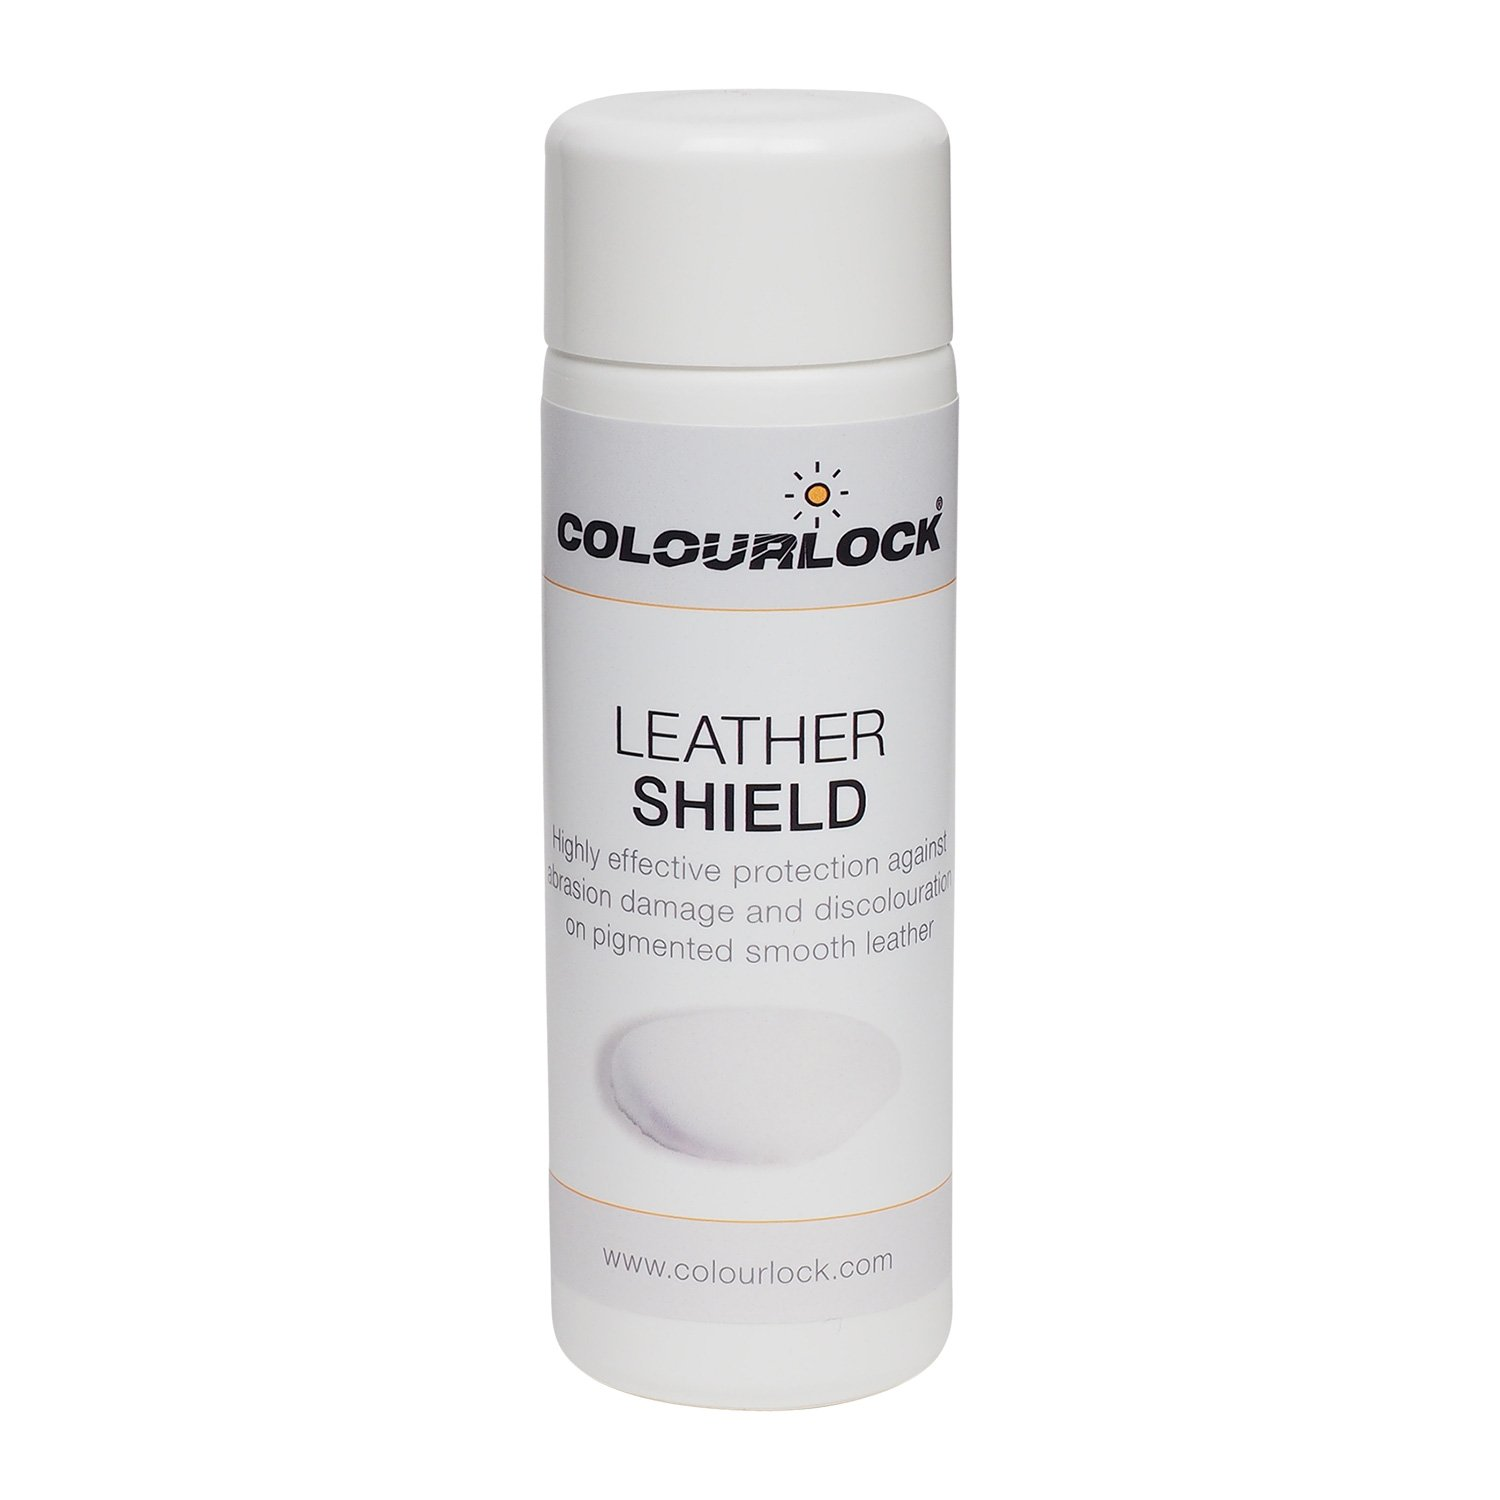 Colourlock Leather Shield Kit - Strong Cleaner & Leather Shield for Cleaning and Protection Against dye transfers on Furniture, Jackets, Handbags & Protection Against Scuffs on car Seats (Regular) by Colourlock (Image #2)